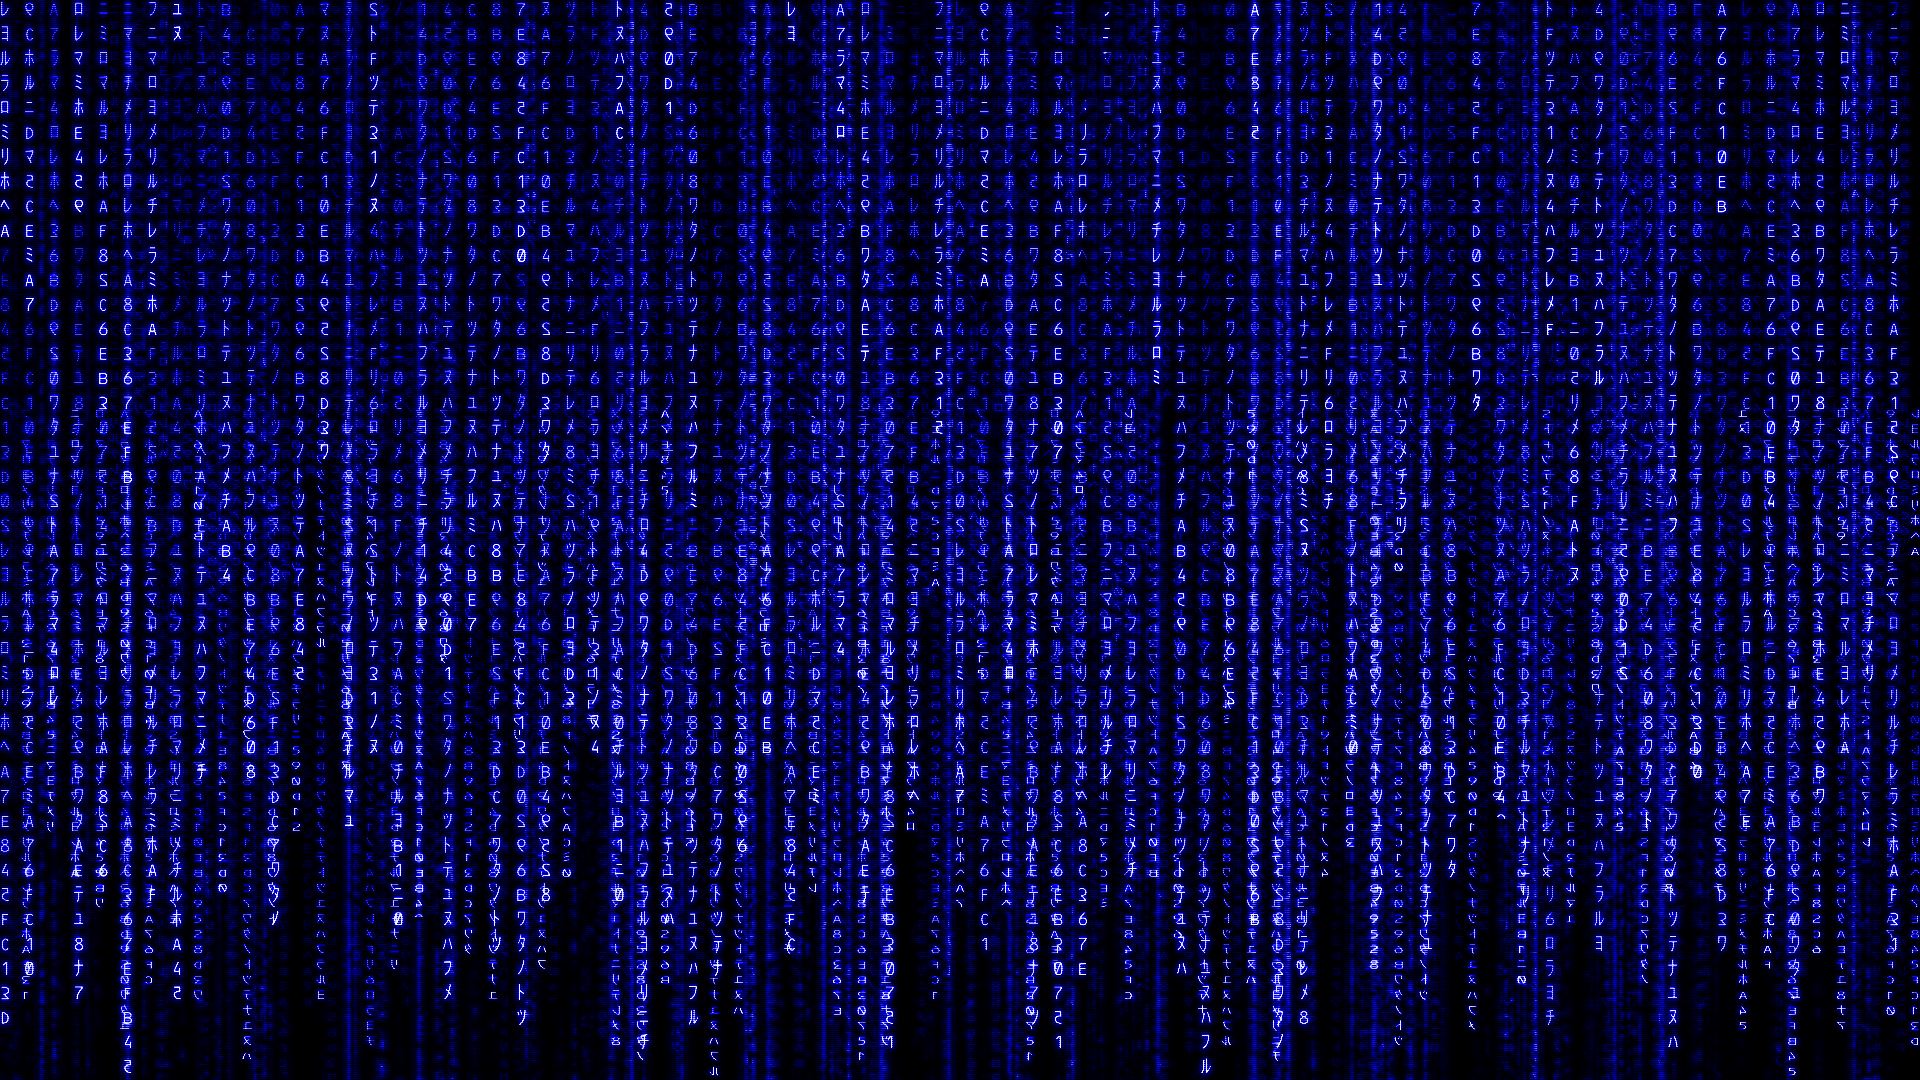 Blue Matrix Backgrounds Is 4k Wallpaper Glitch Wallpaper Blue Background Wallpapers Hd Wallpaper